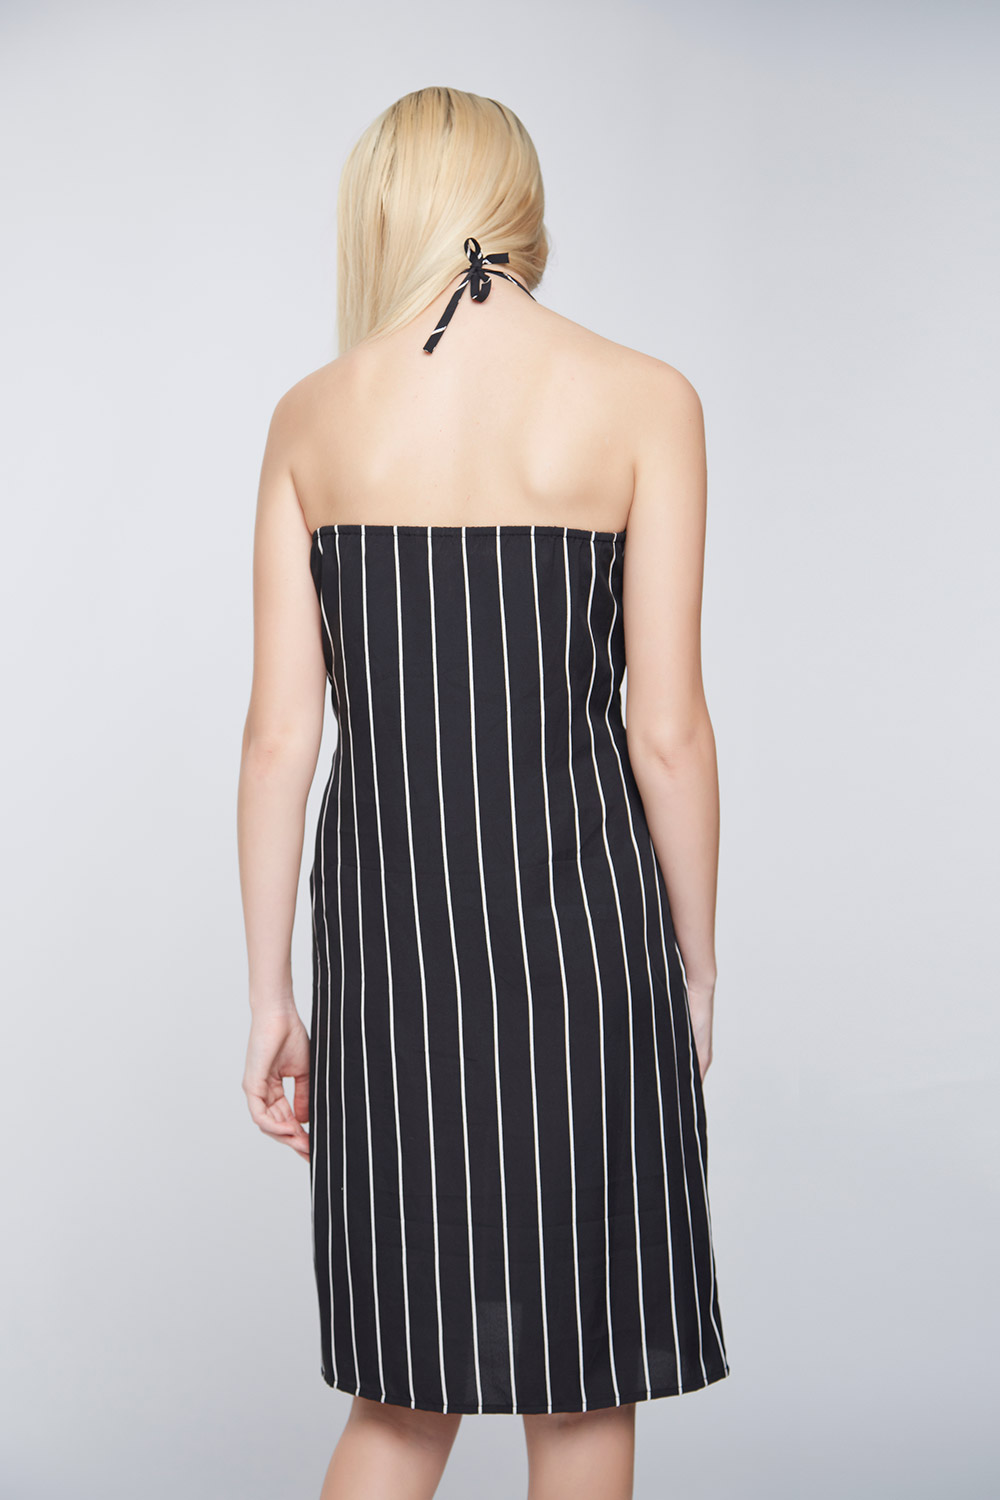 Black White Stripes Ramona Dress -3